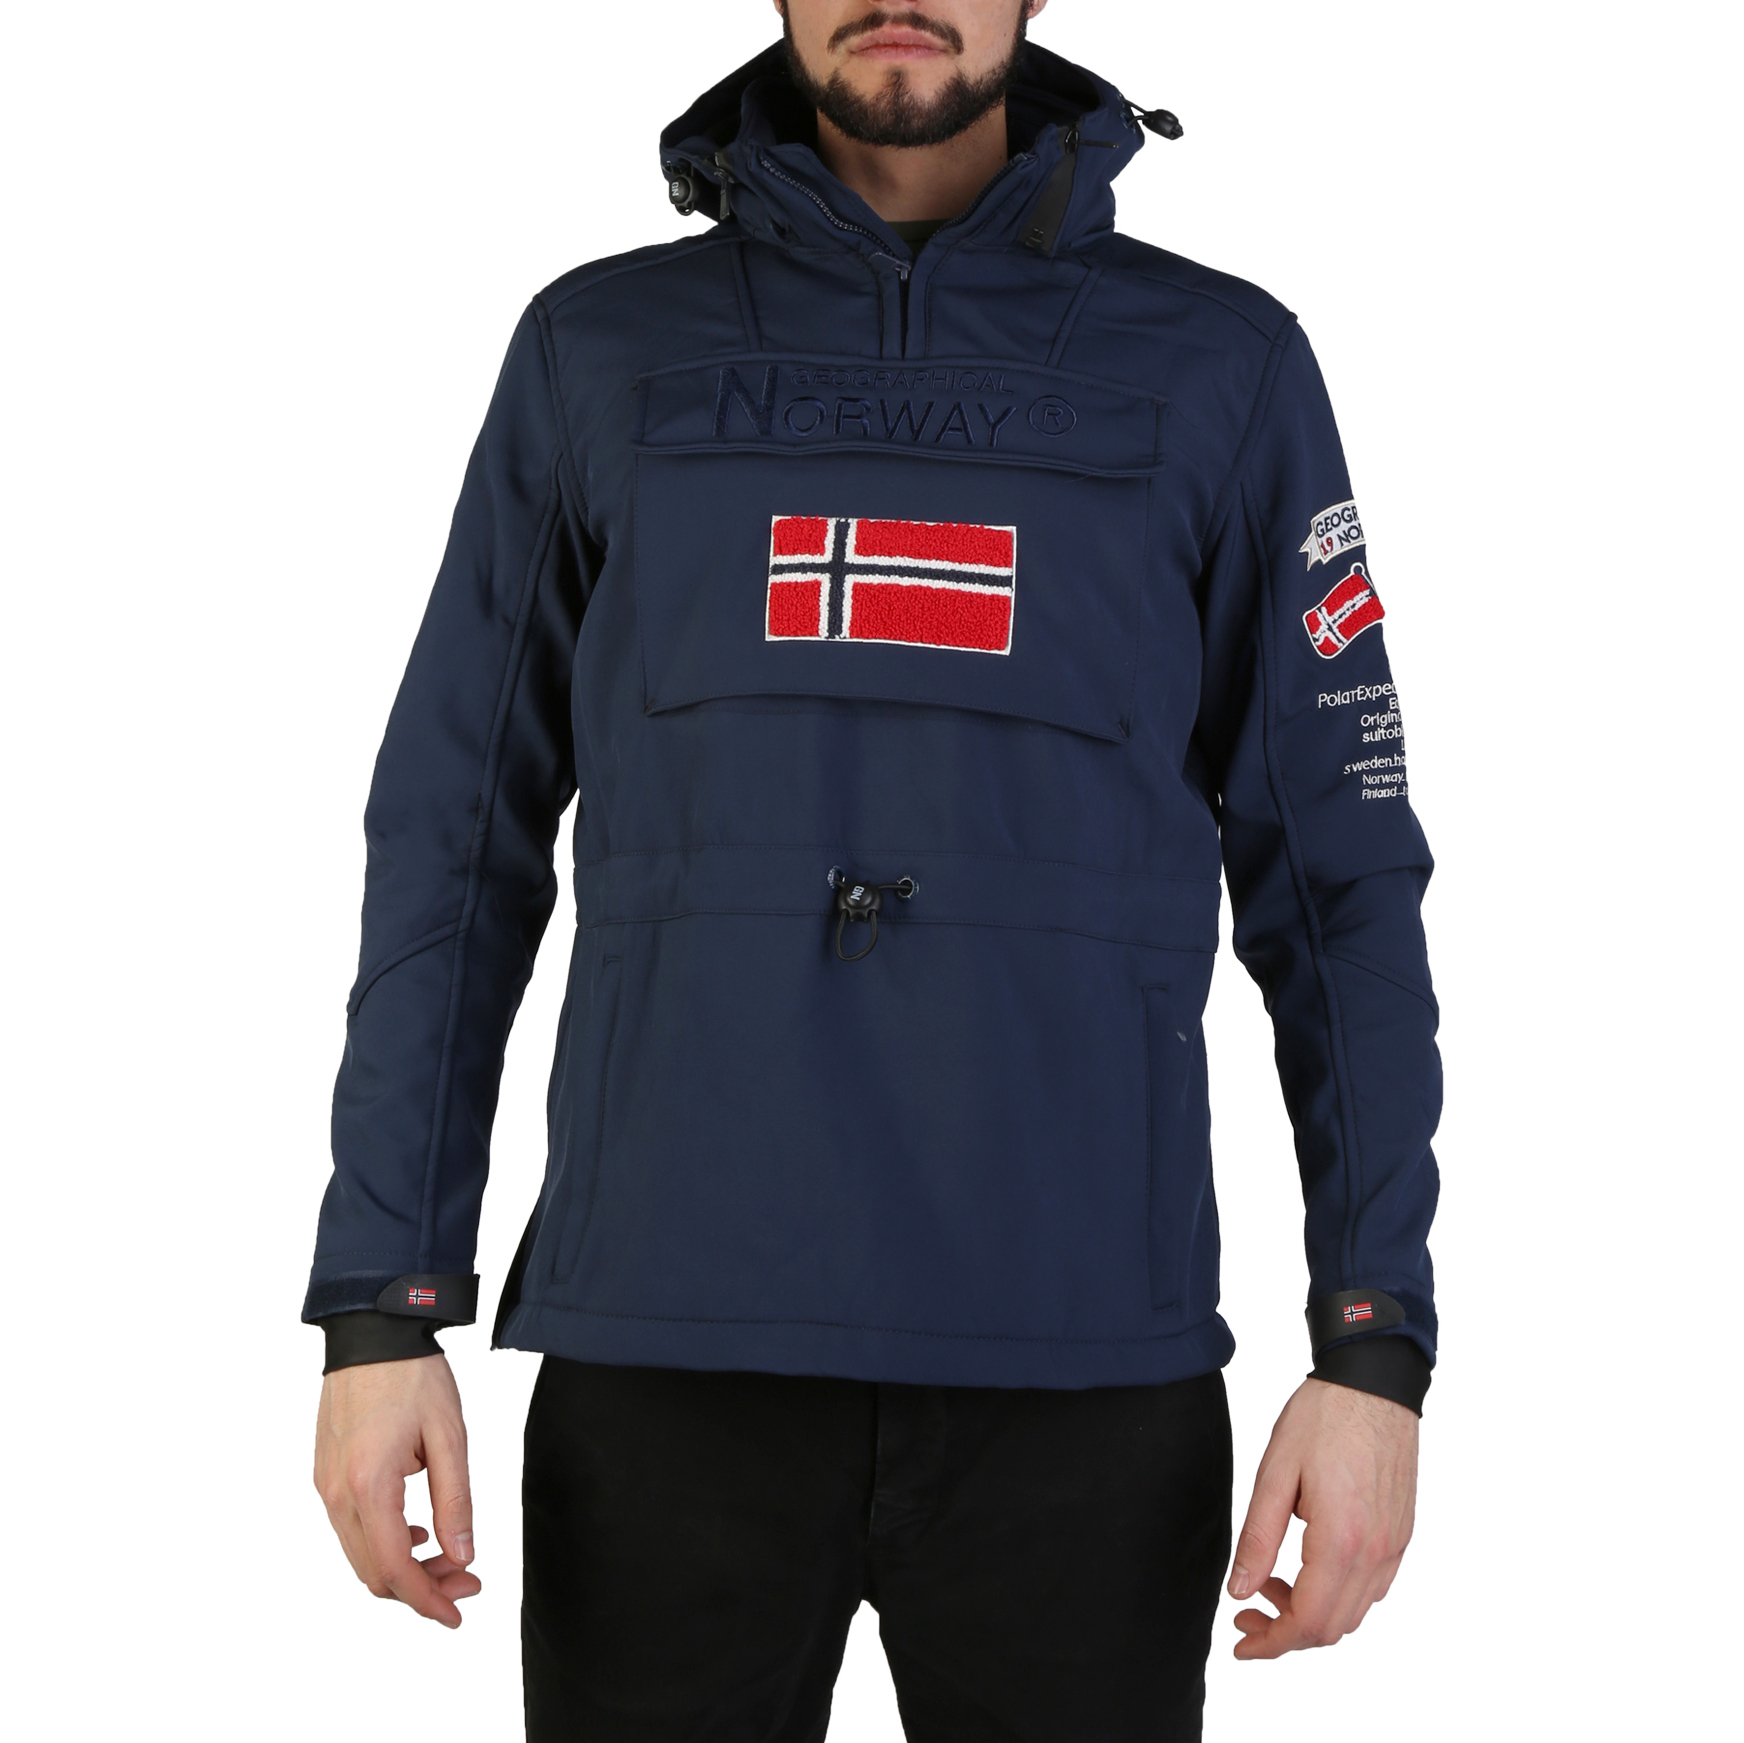 veste target man geographical norway navy